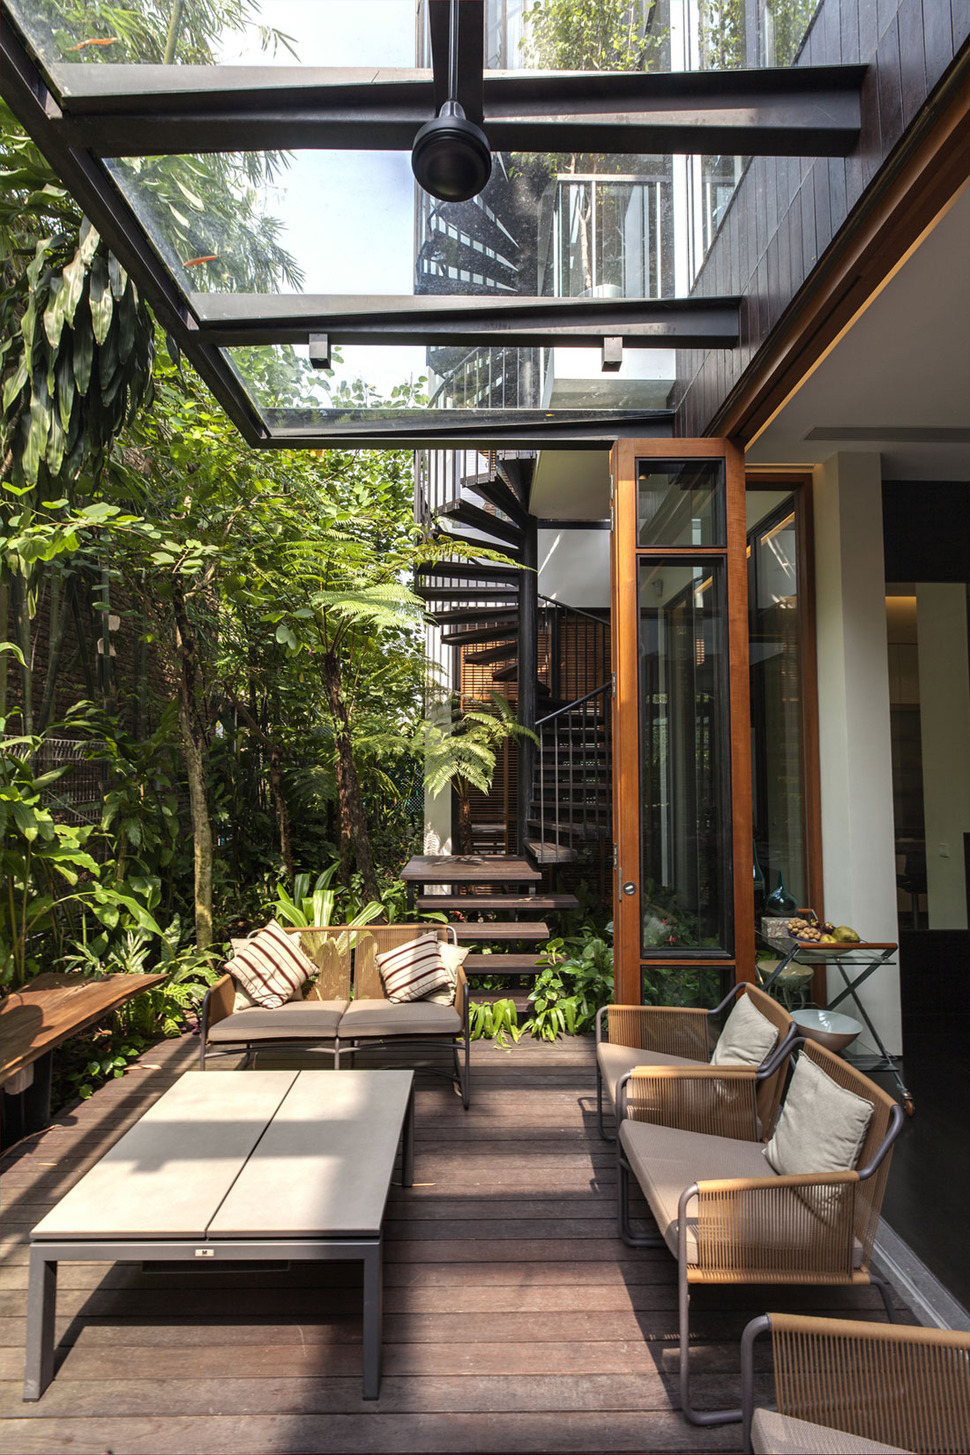 Outdoor Roof Lush Gardens And Peekaboo Roof Pool Define Contemporary Home